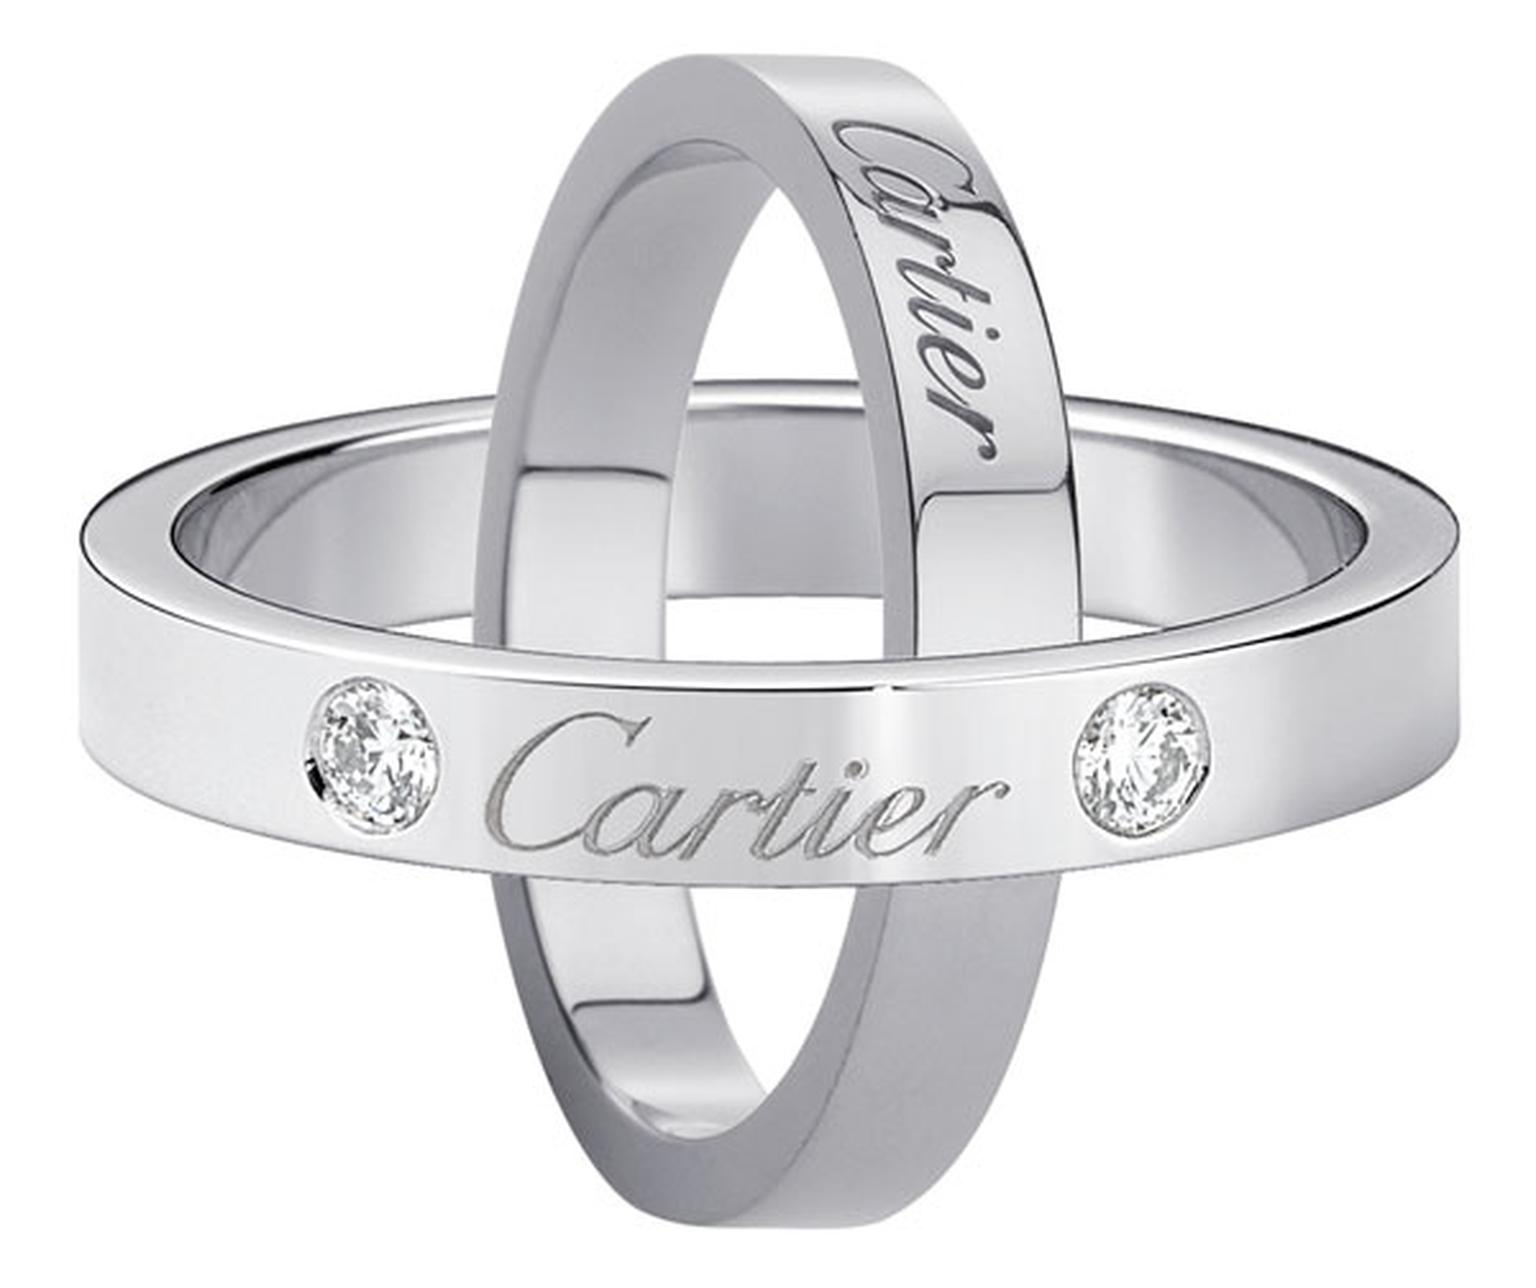 Cartier wedding rings engraved with cartier wedding ring cartier wedding rings engraved with cartier wedding ring engraved with cartier platinum junglespirit Choice Image